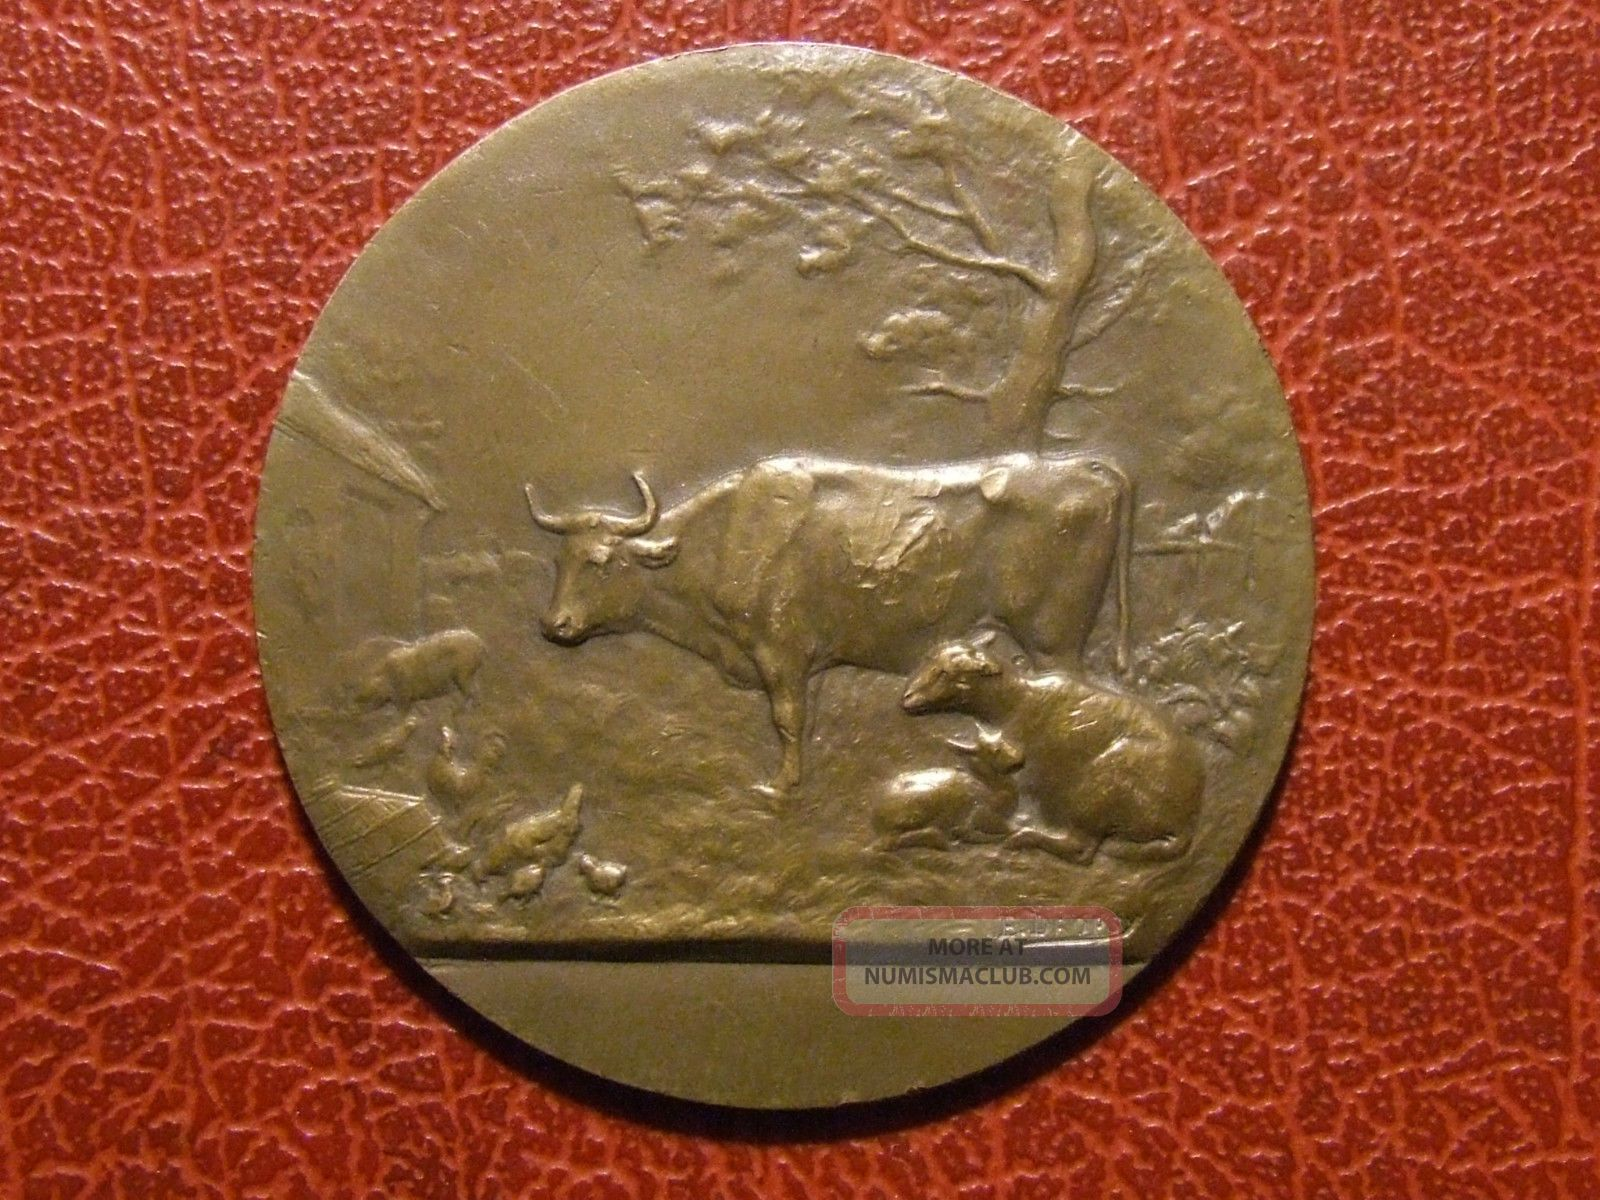 Art Nouveau Agriculture Farmers Animal L ' Allier Medal By E.  Dropsy Exonumia photo